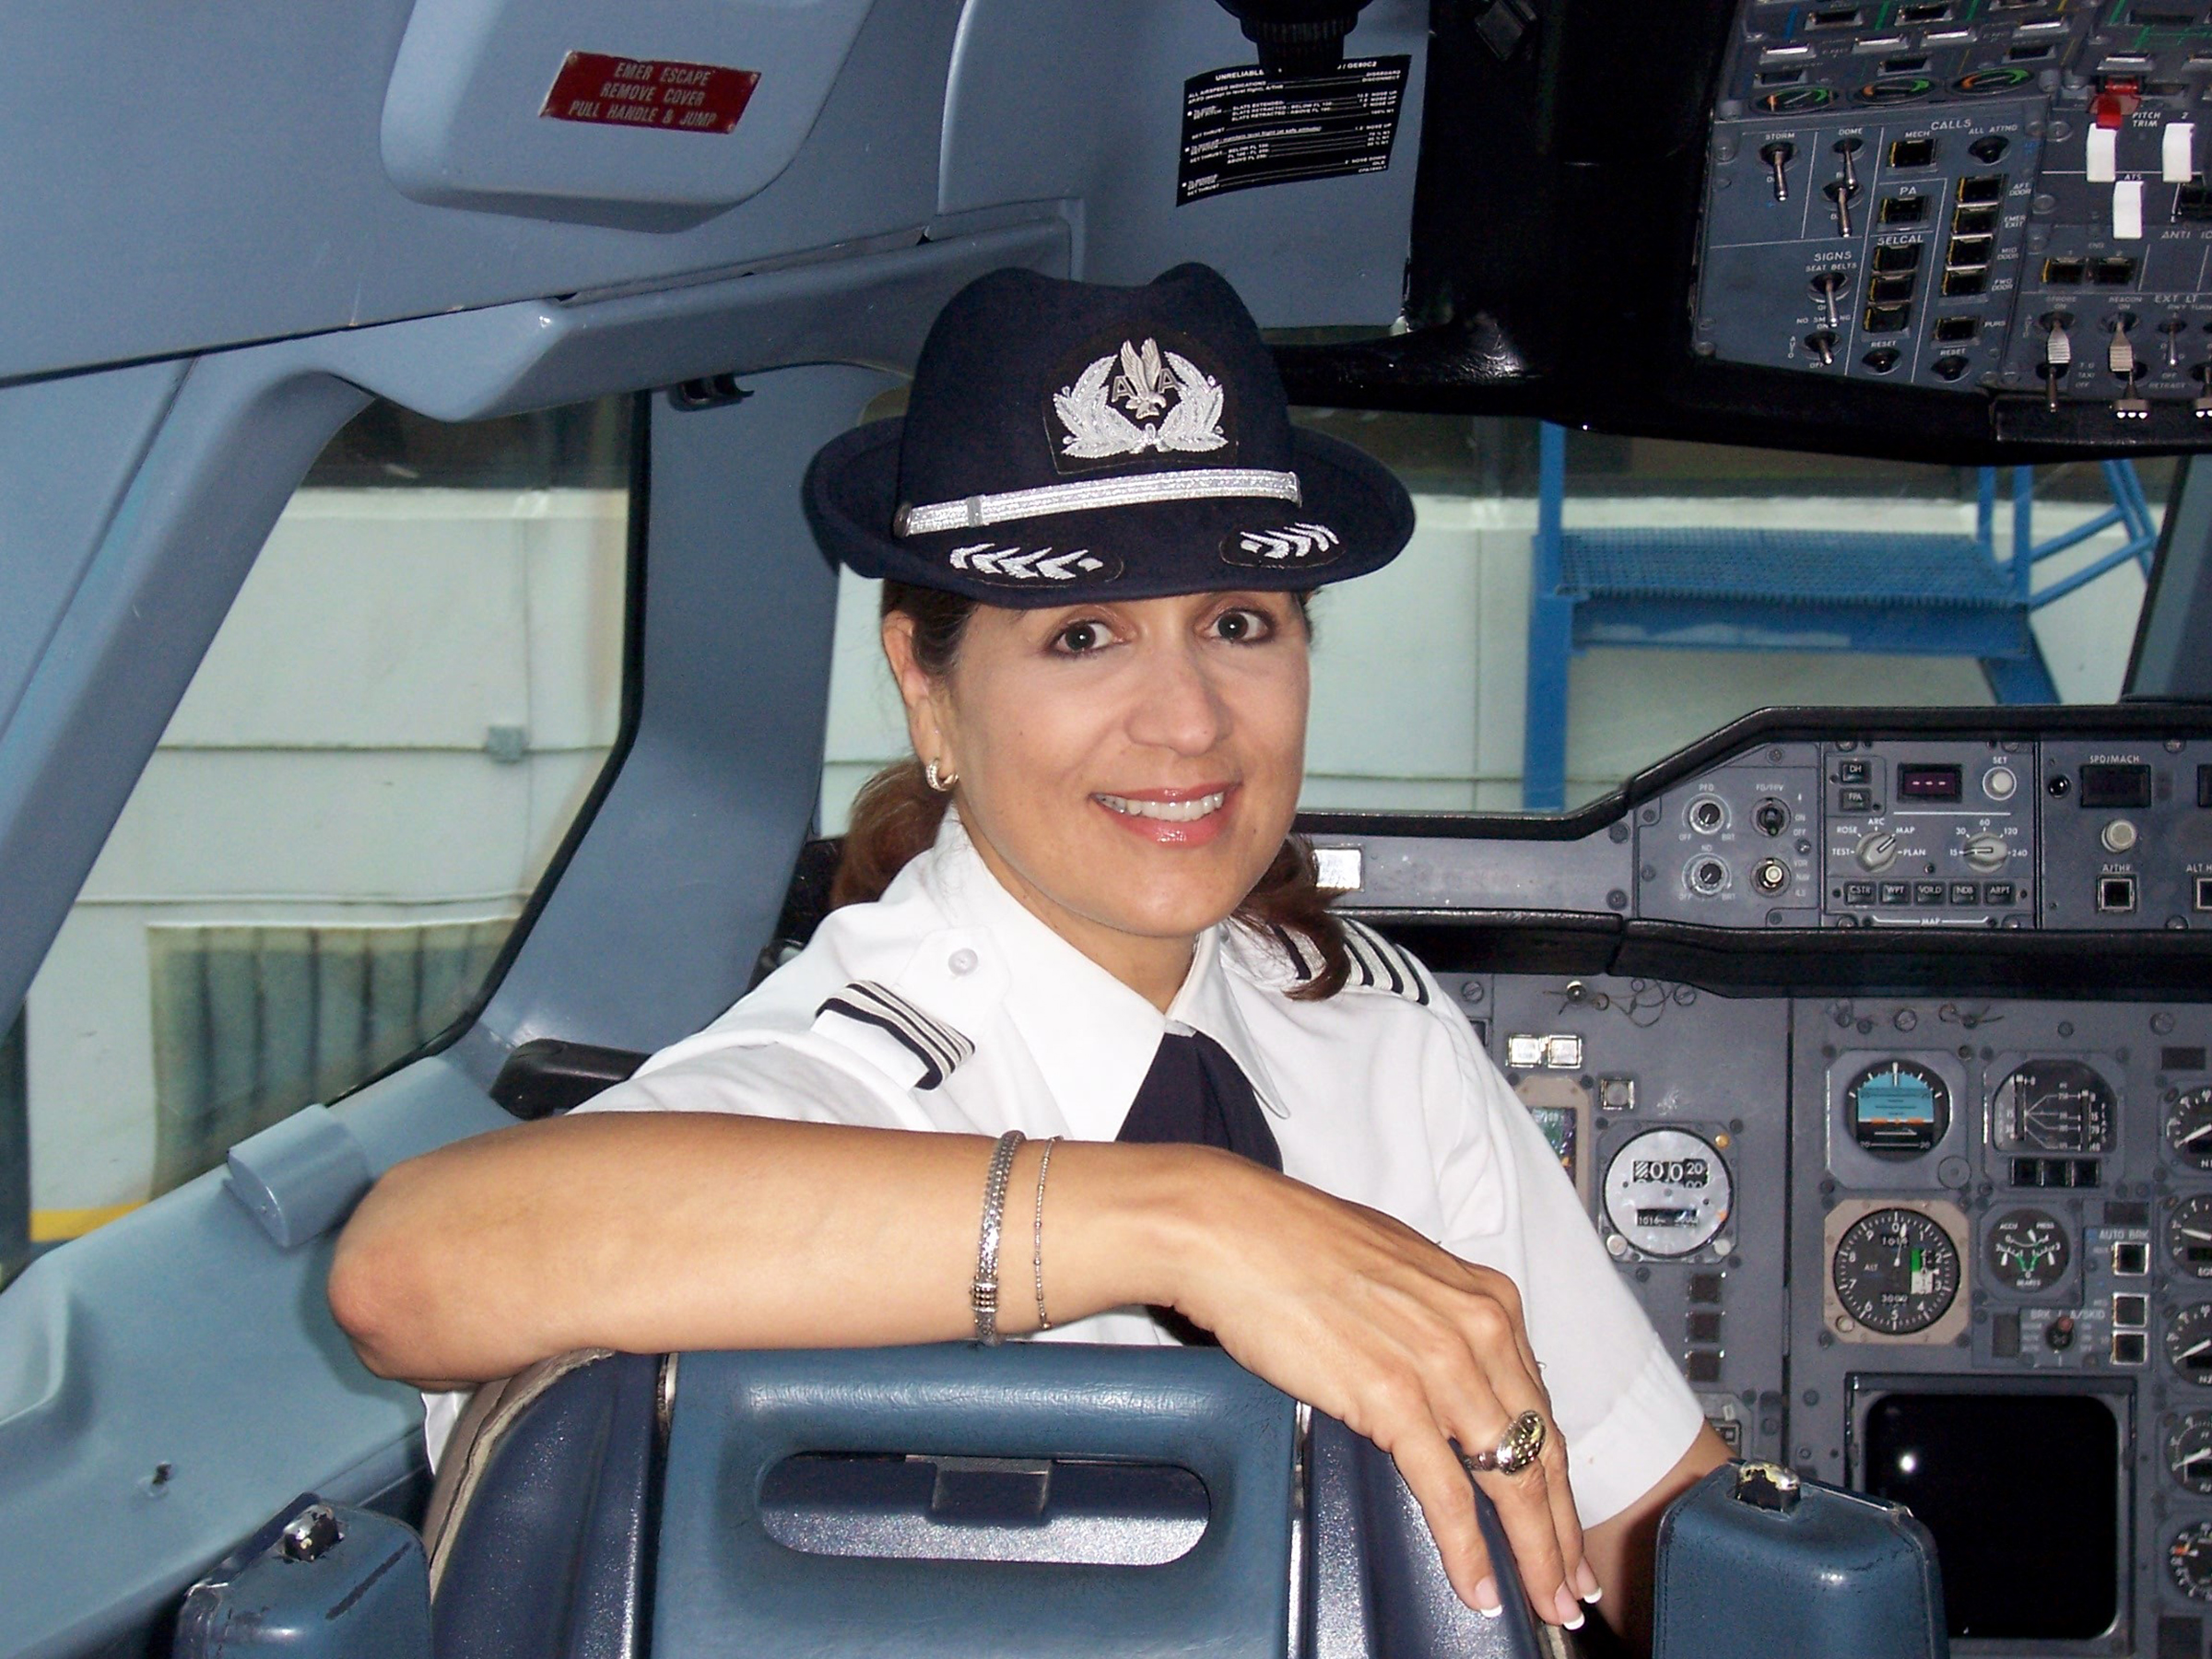 Custodio in the cockpit of an aircraft.